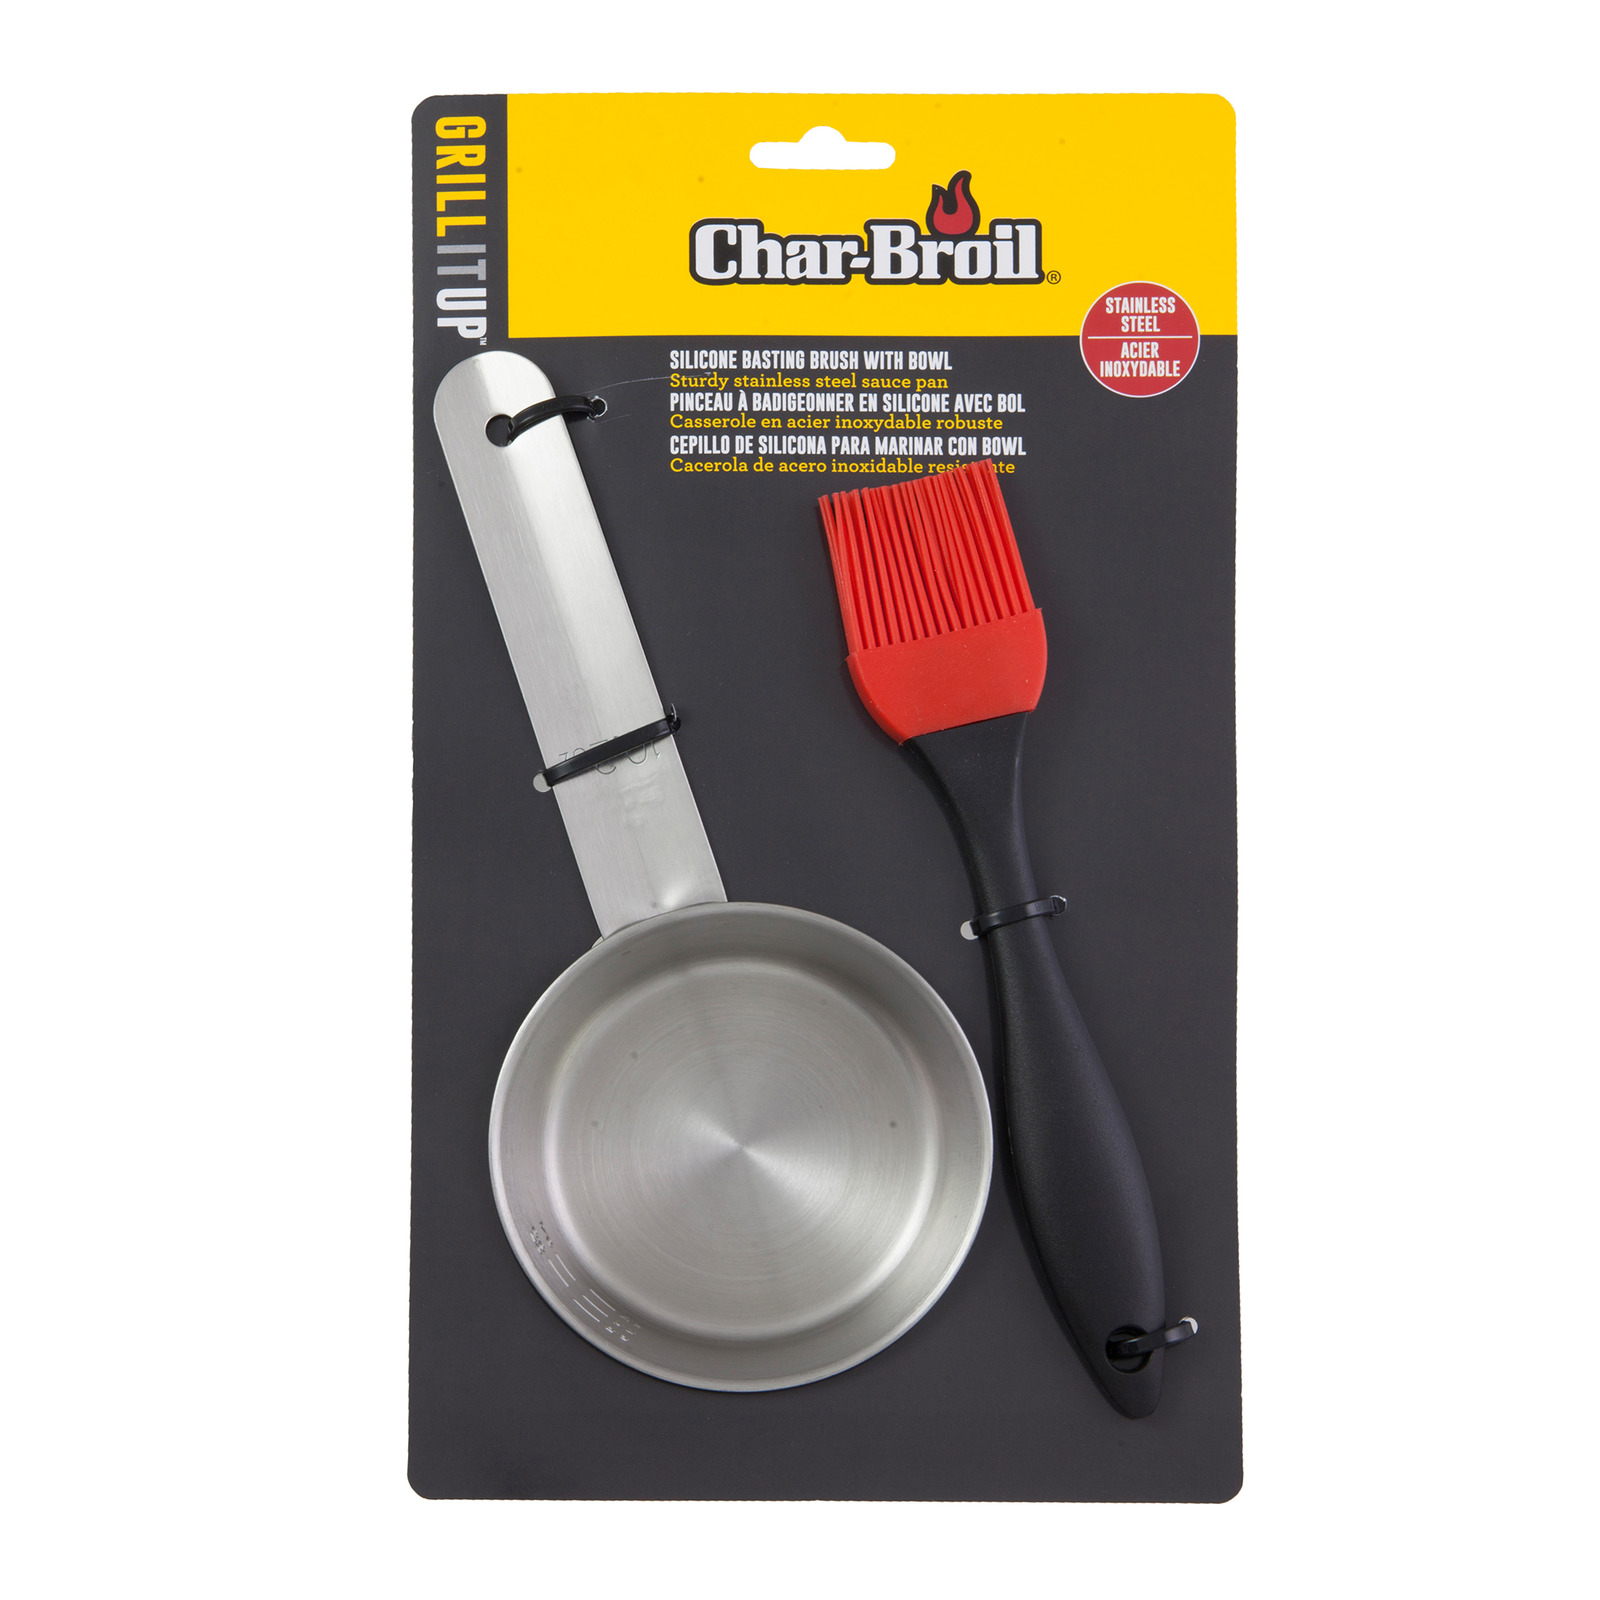 Char-Broil Aspire BBQ Silicone Brush With Bowl